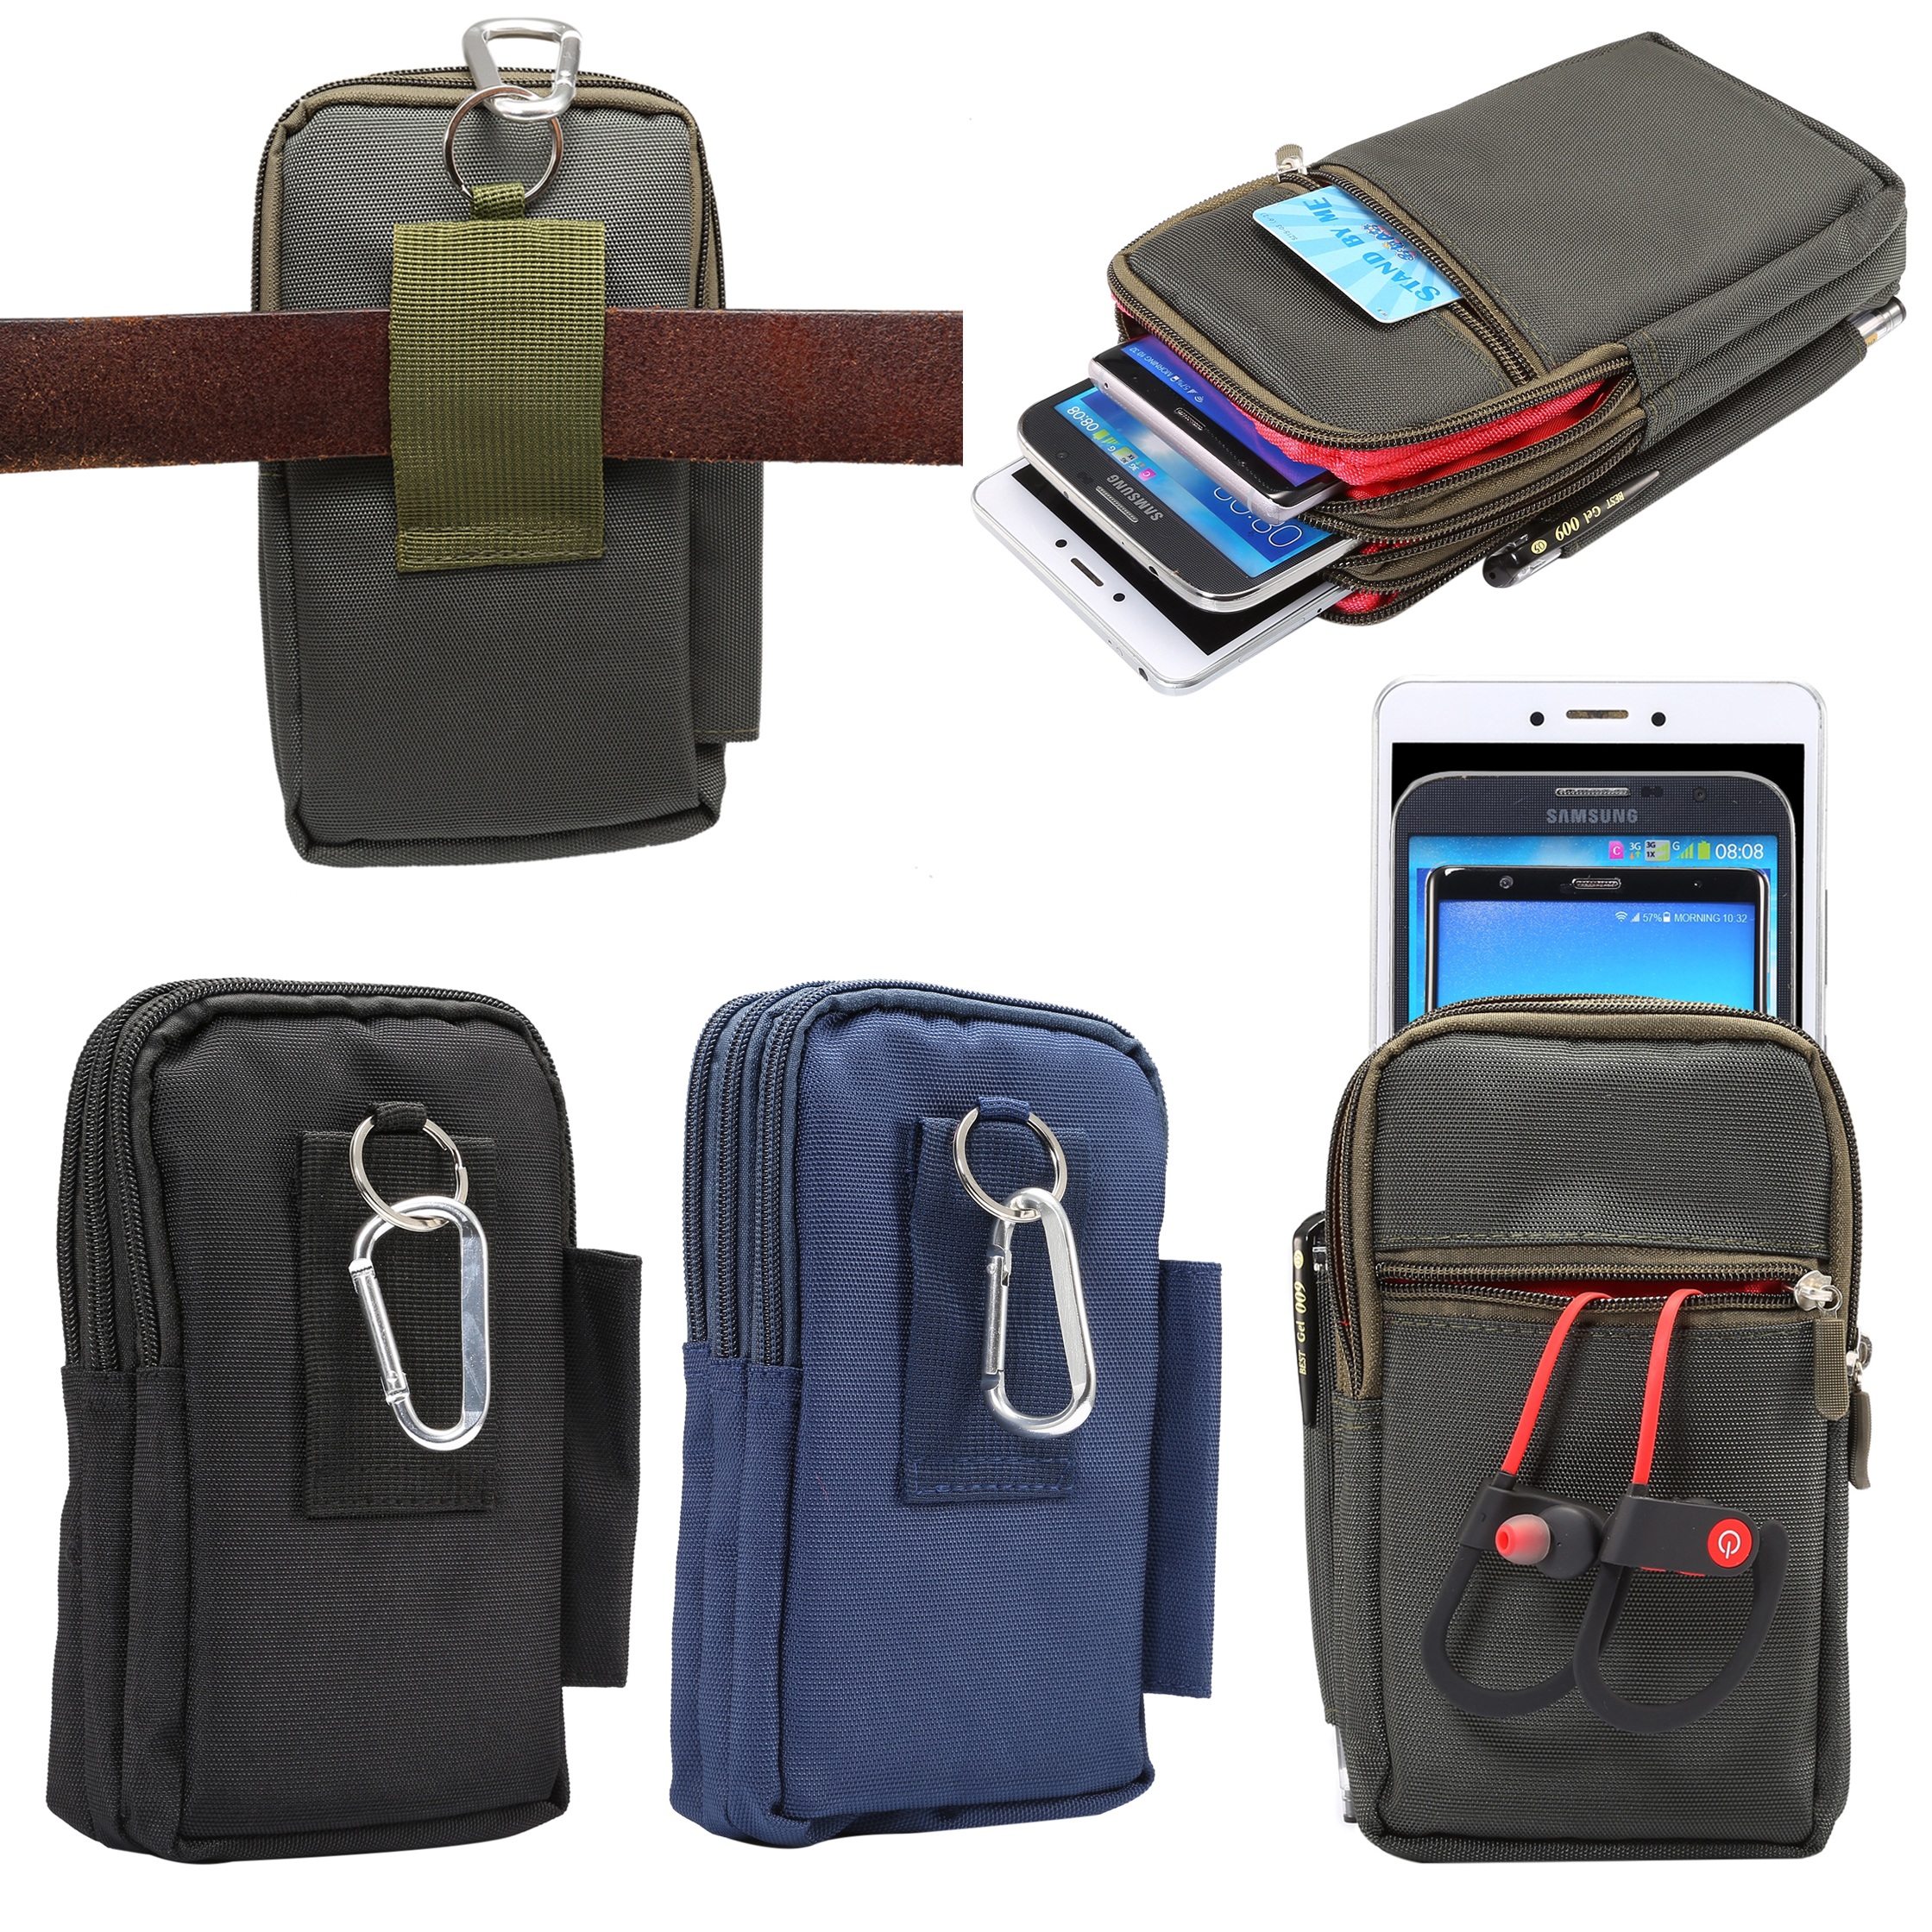 088eaeb595 Multi-Function Outdoor Travel Sport Phone Belt Clip Zipper Pouch Waist Bag  - 7